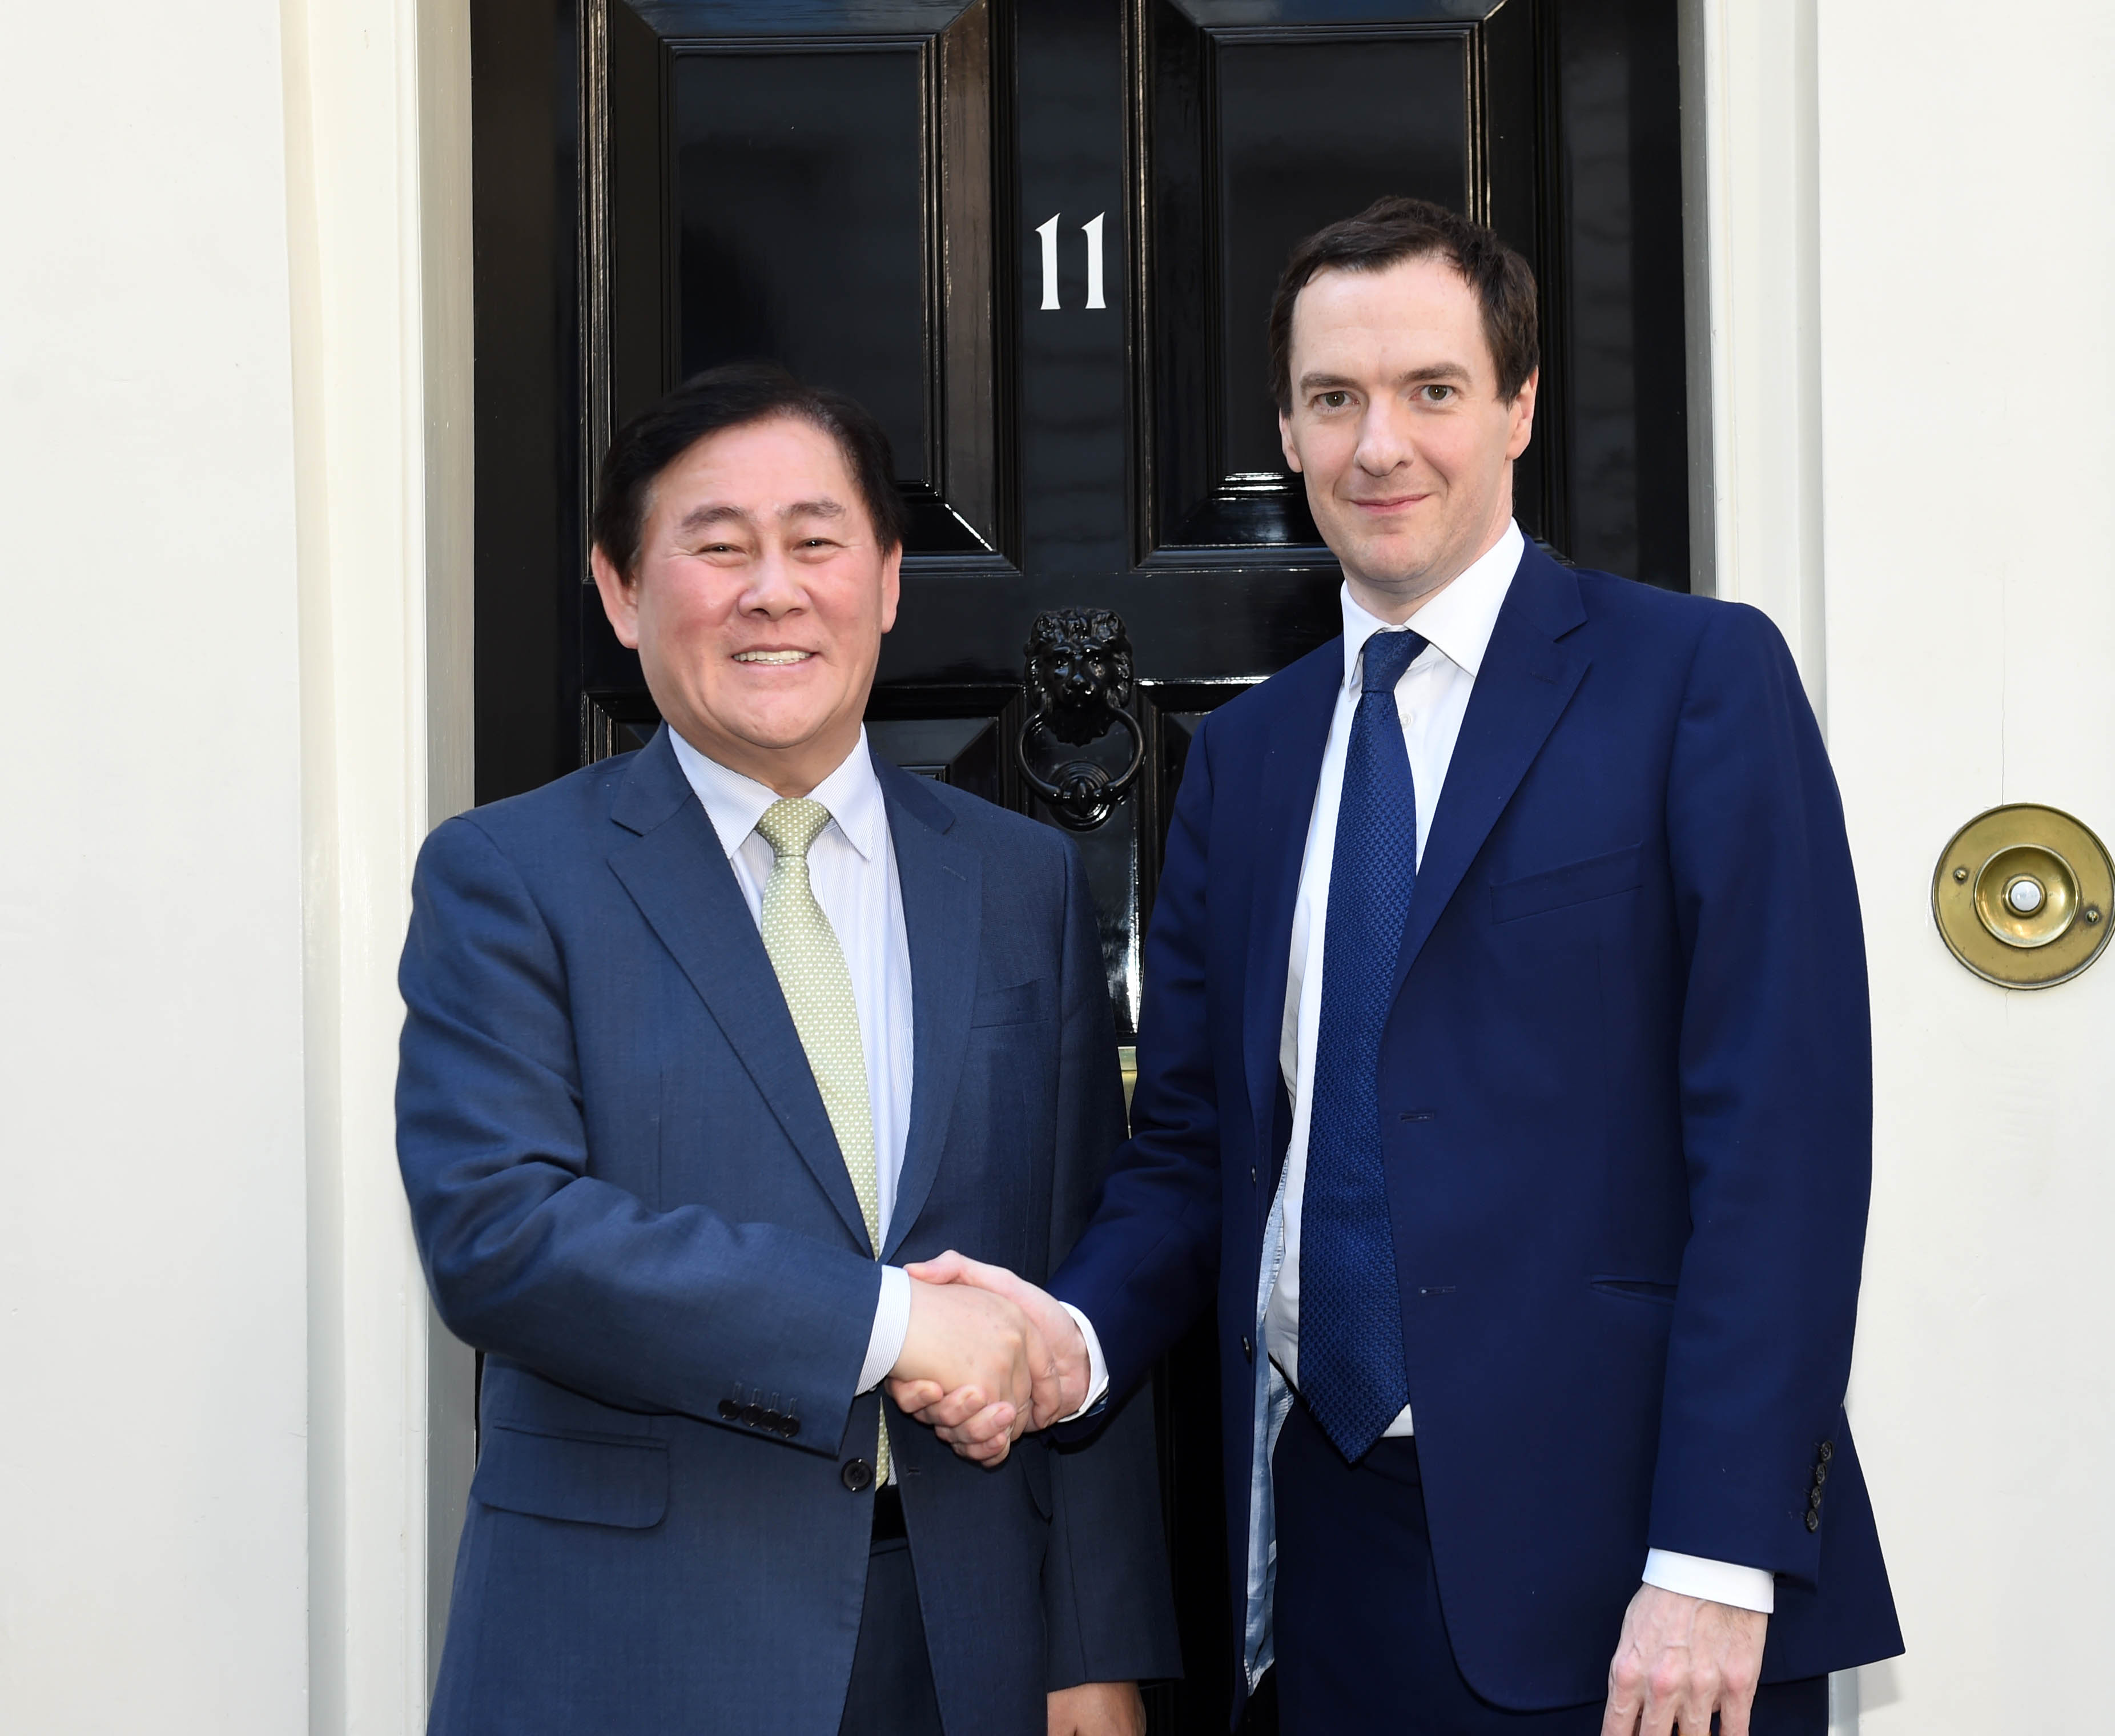 Deputy Prime Minister Choi Meets with UK Finance Minister George Osborne